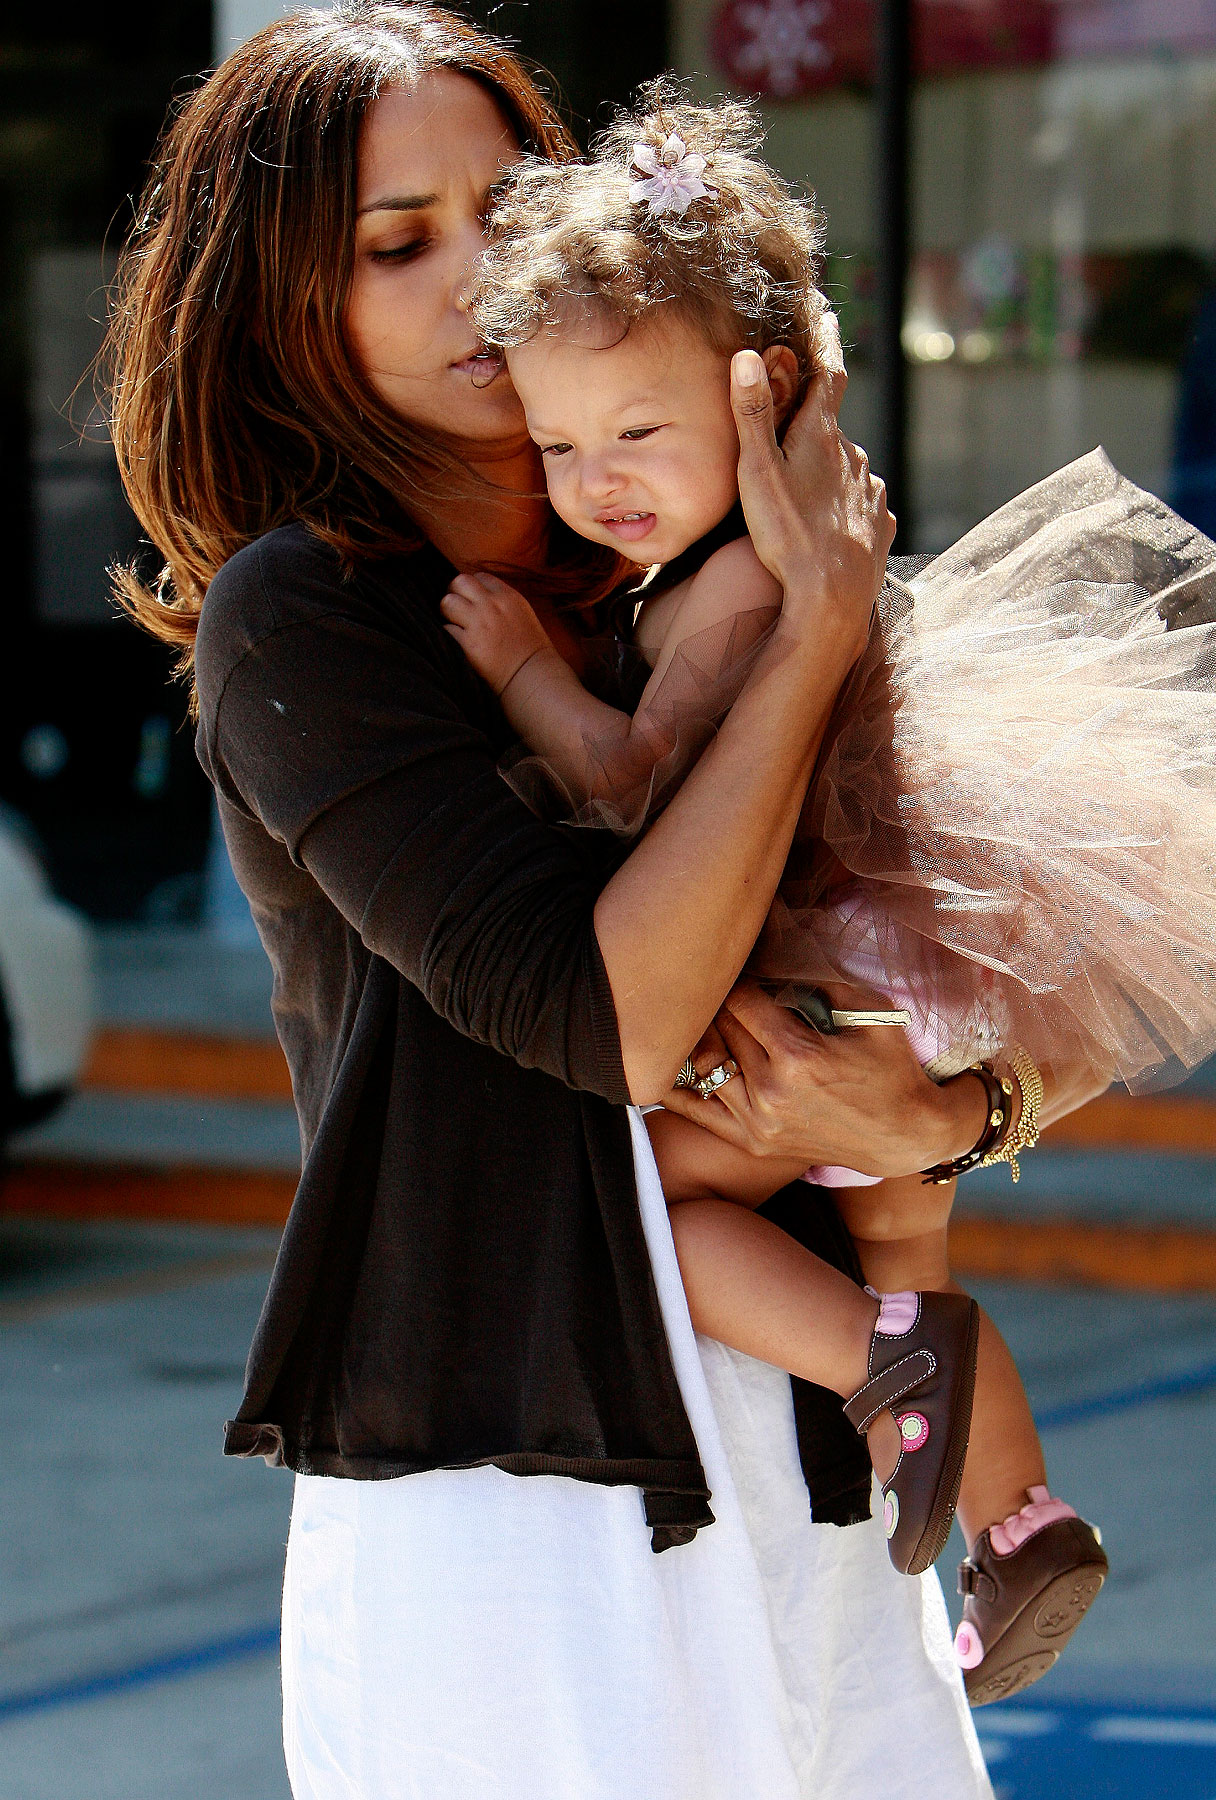 Halle Berry's Birthday Play Date